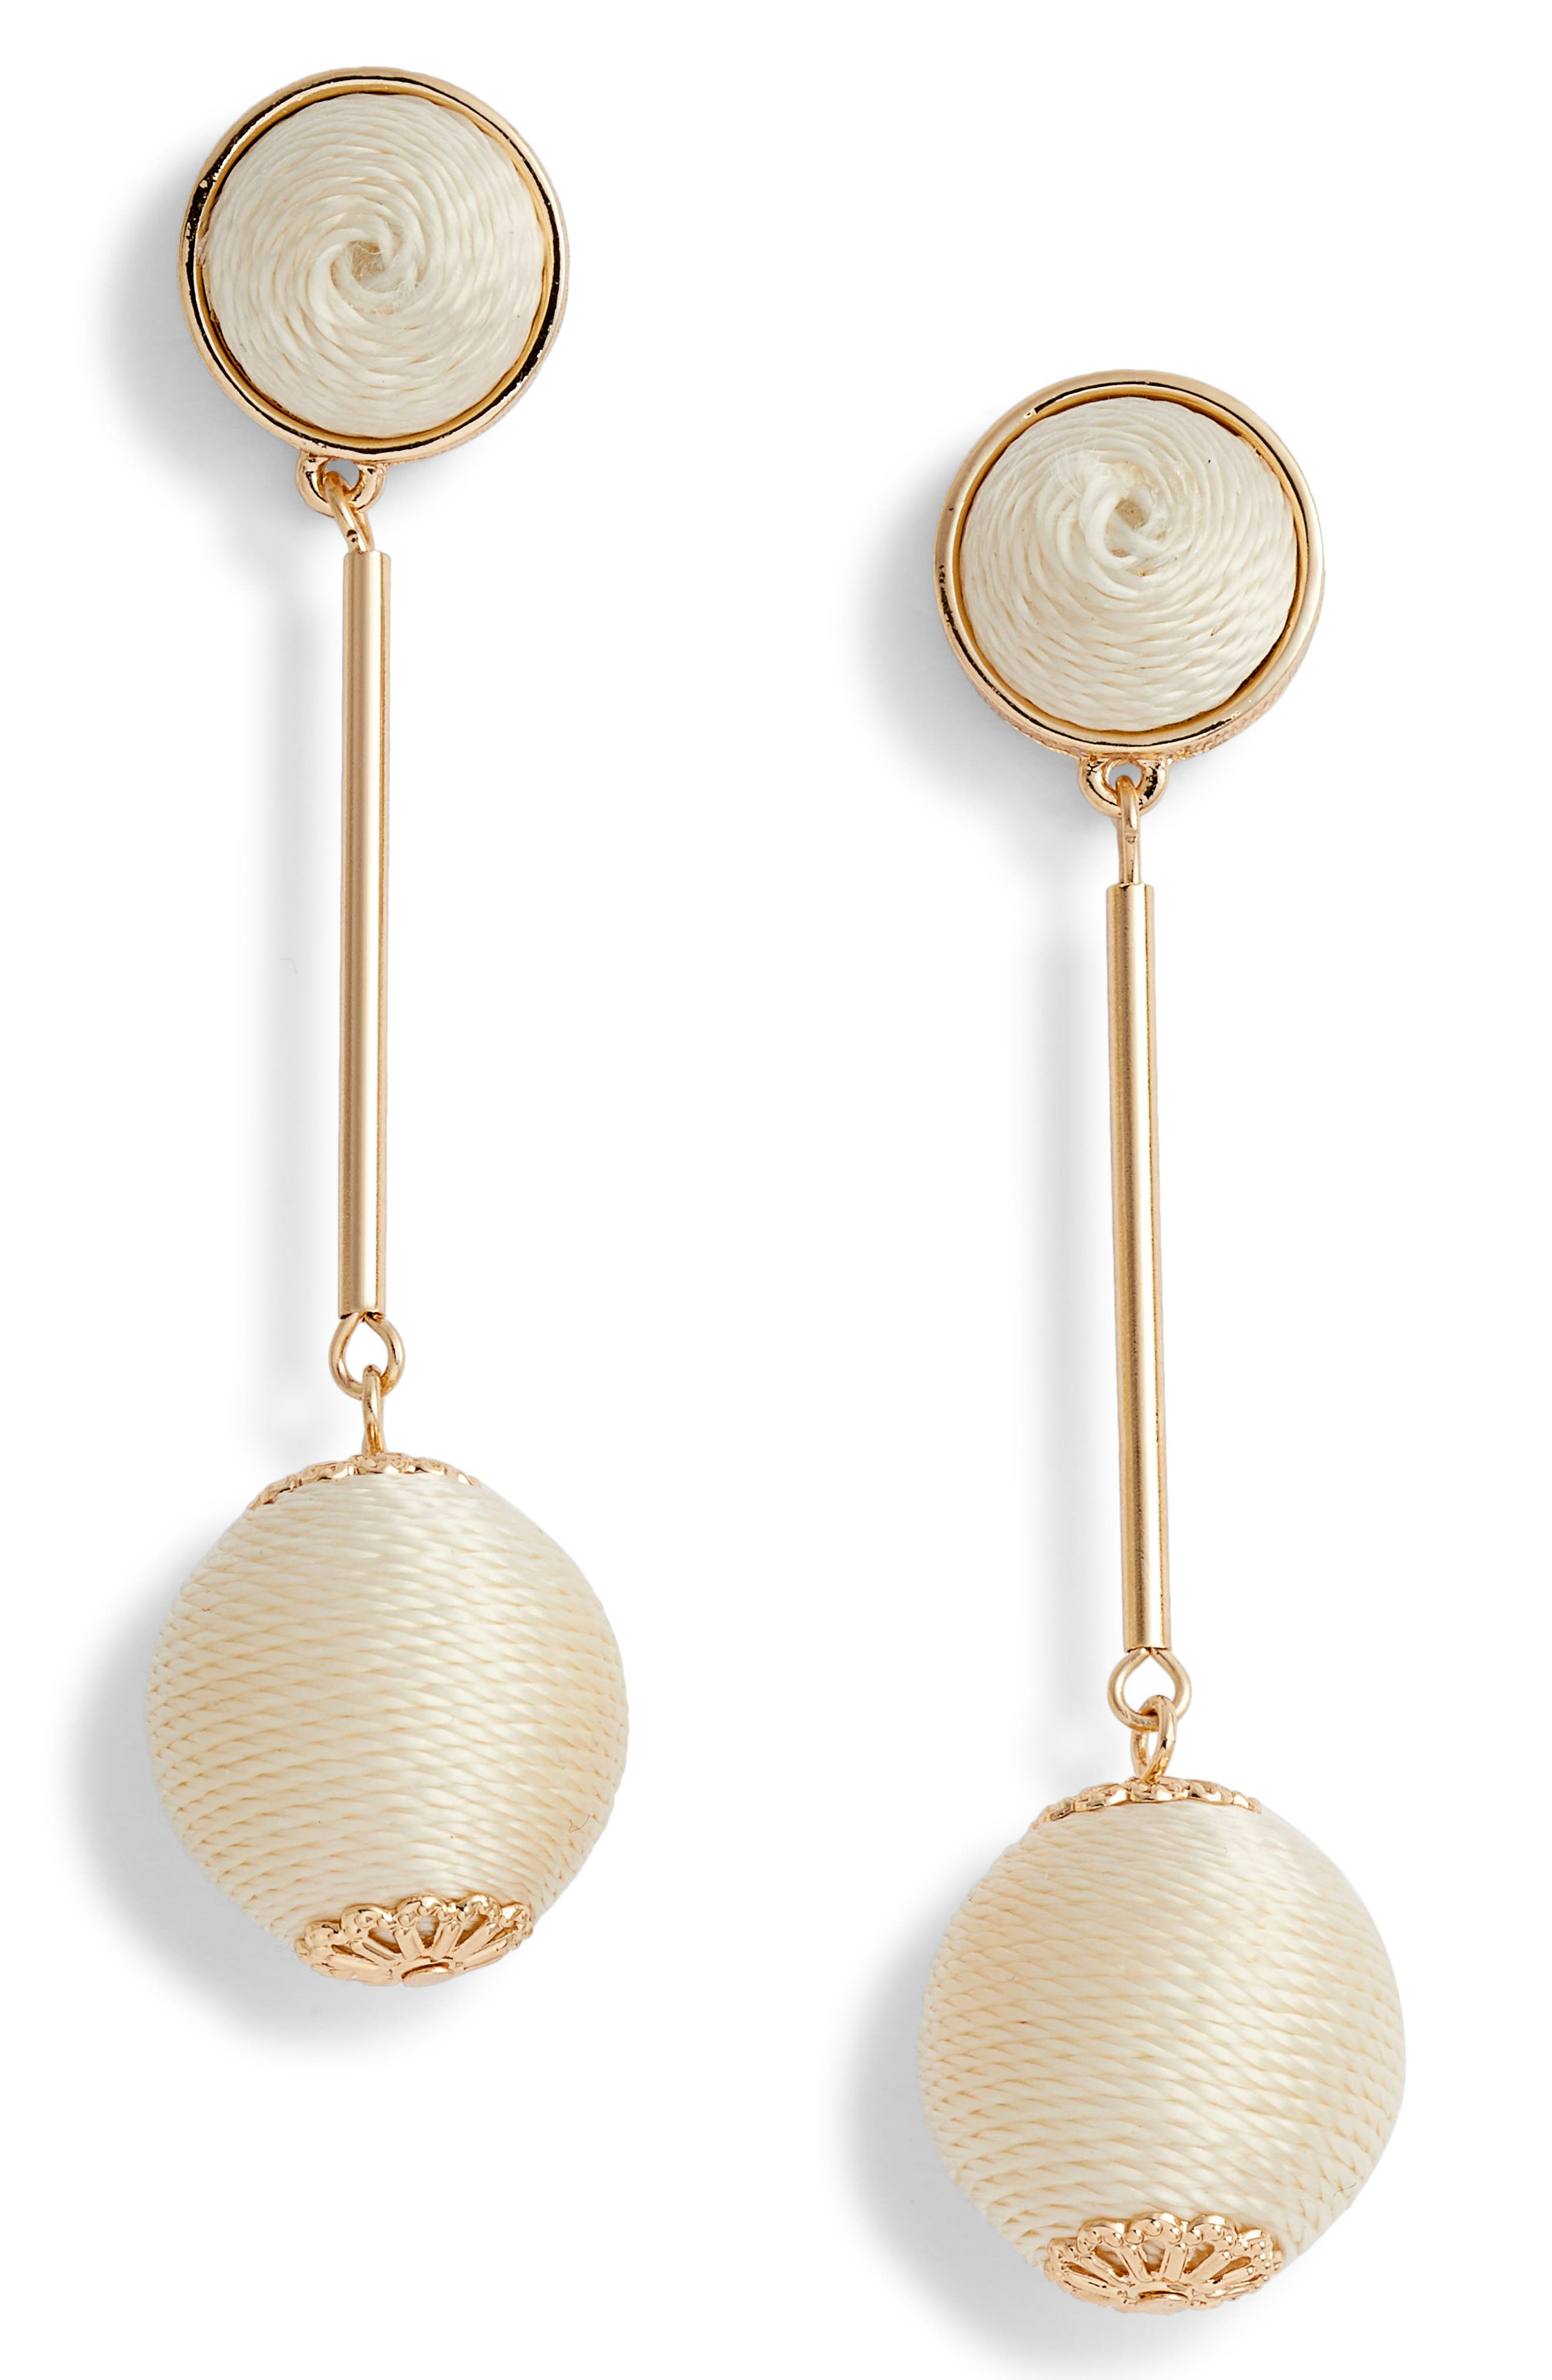 Mod Ball Drop Earrings,                         Main,                         color, White- Gold